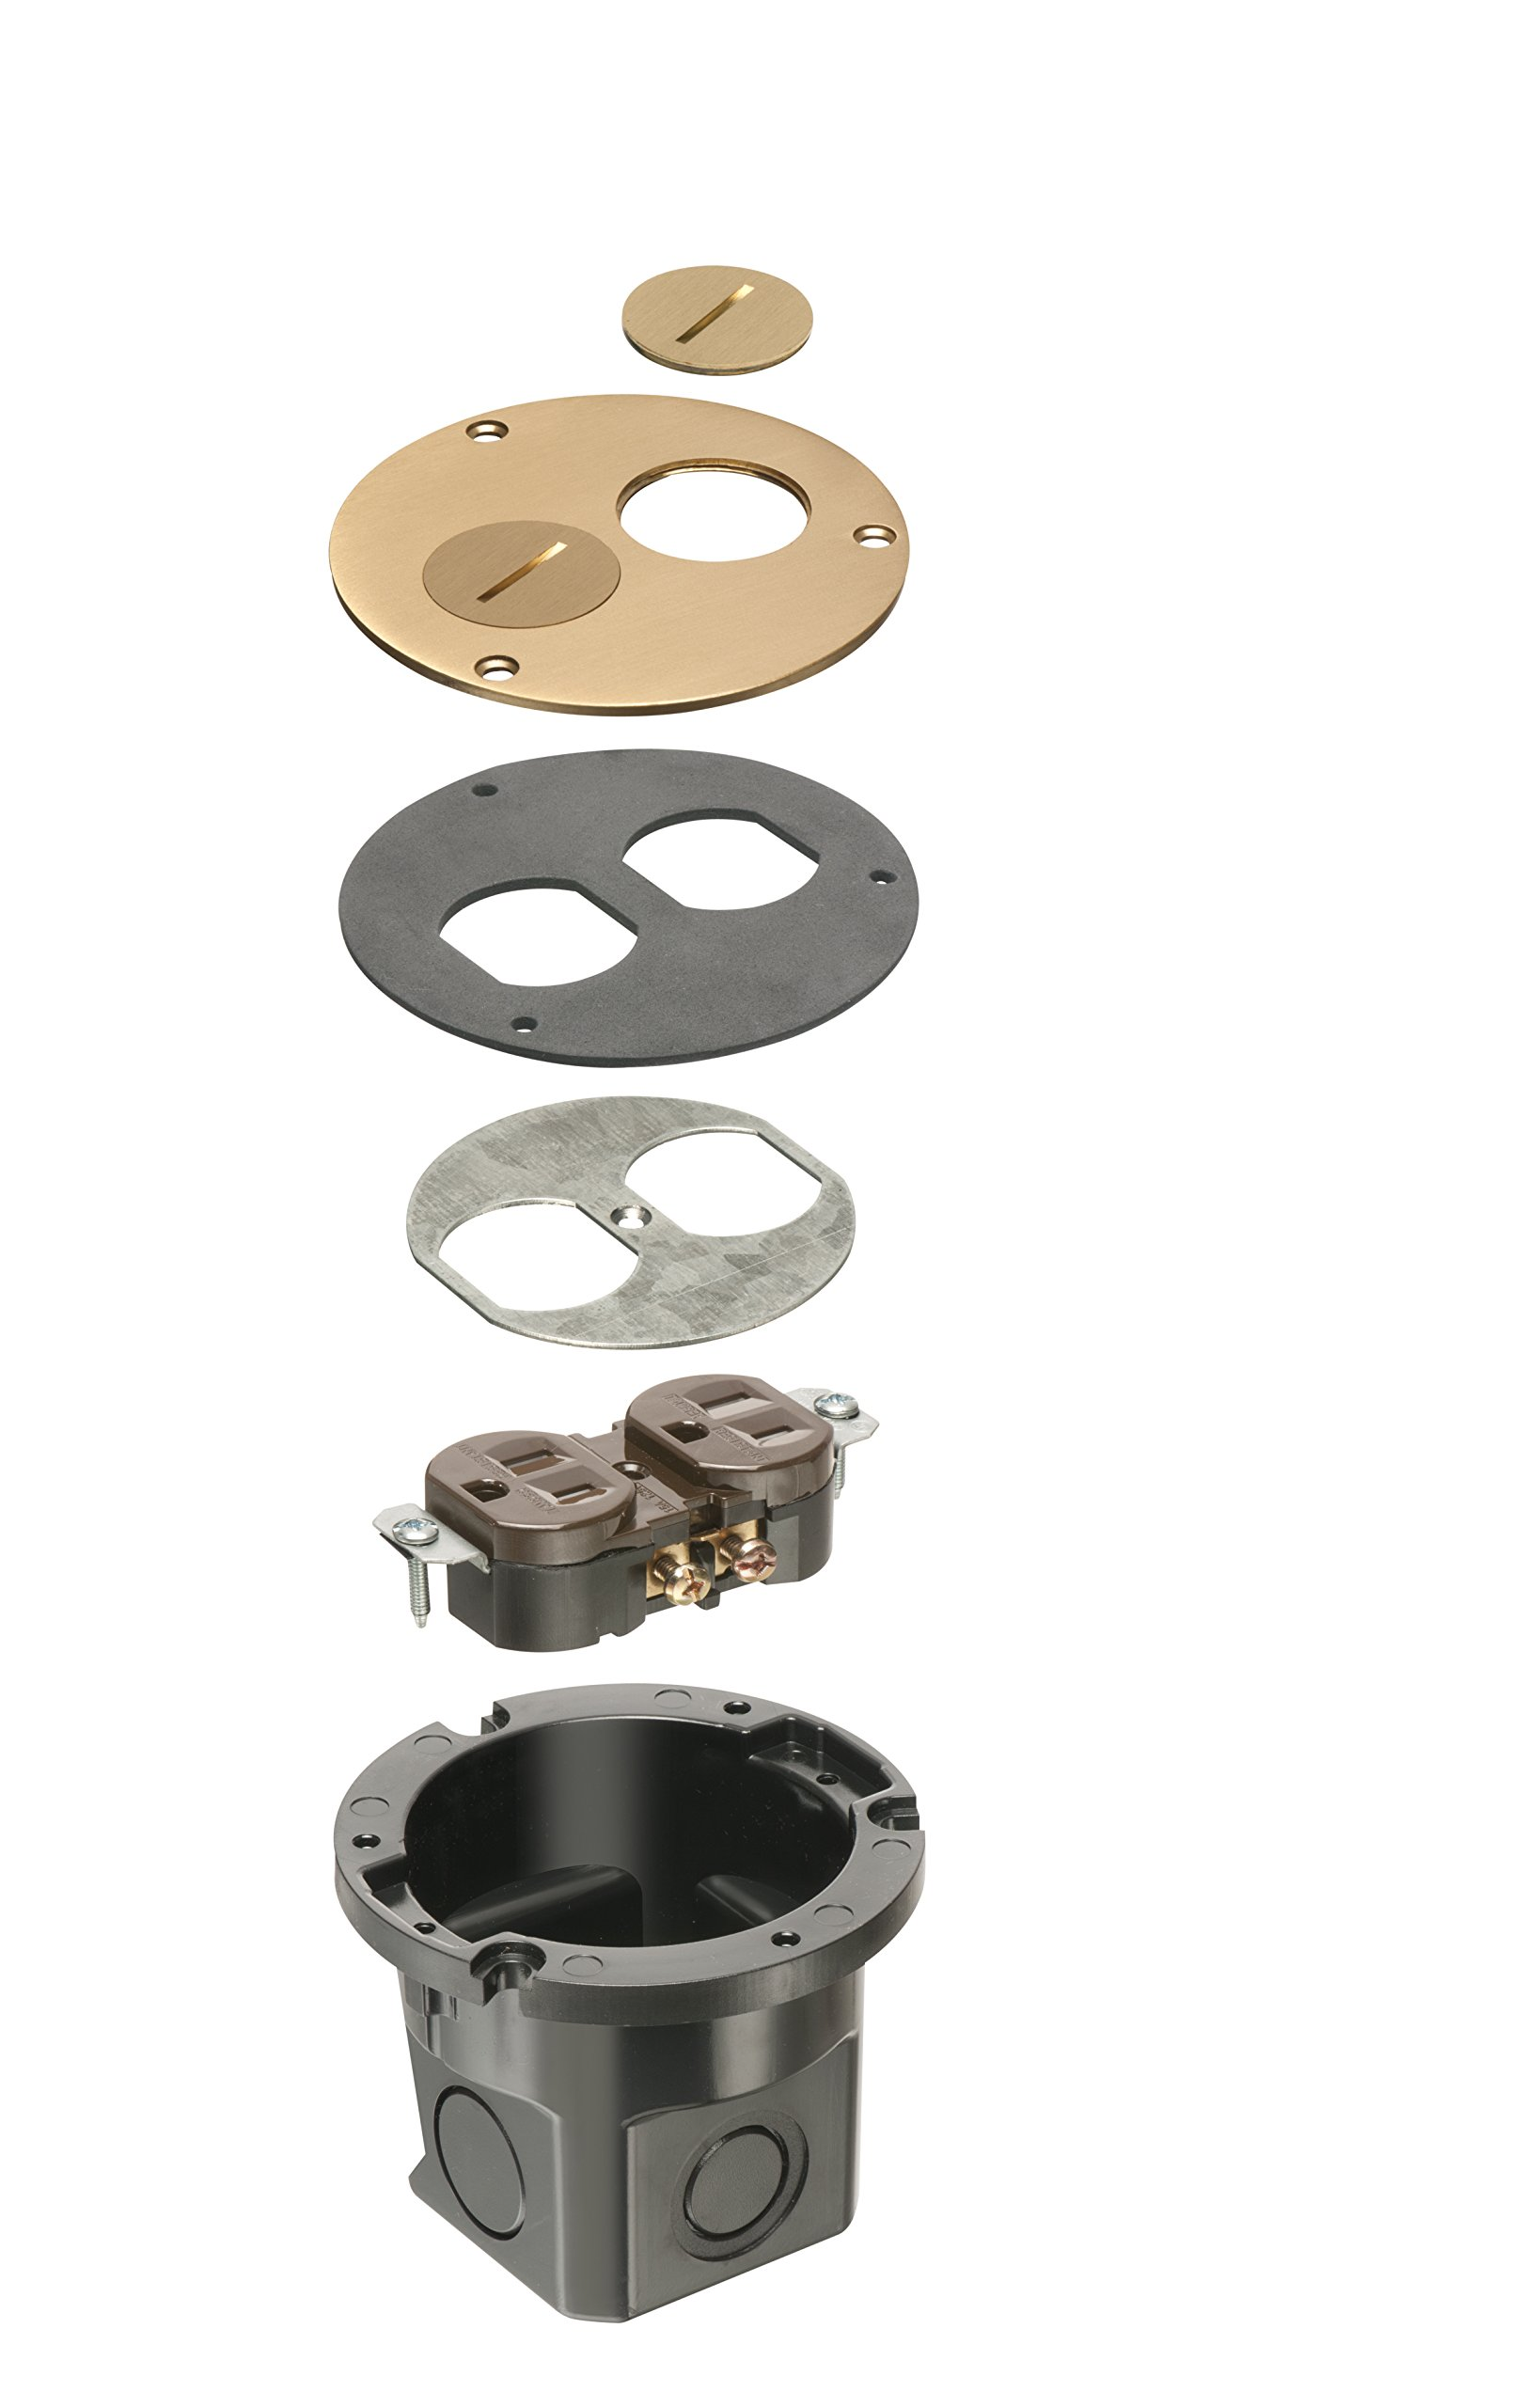 Arlington Industries Arlington FLB3520MB-1 Round Cut Box Kit Cover and Threaded Plugs, for Installed Floors, 1-Gang, Metallic Brass, 1-Pack by Arlington Industries